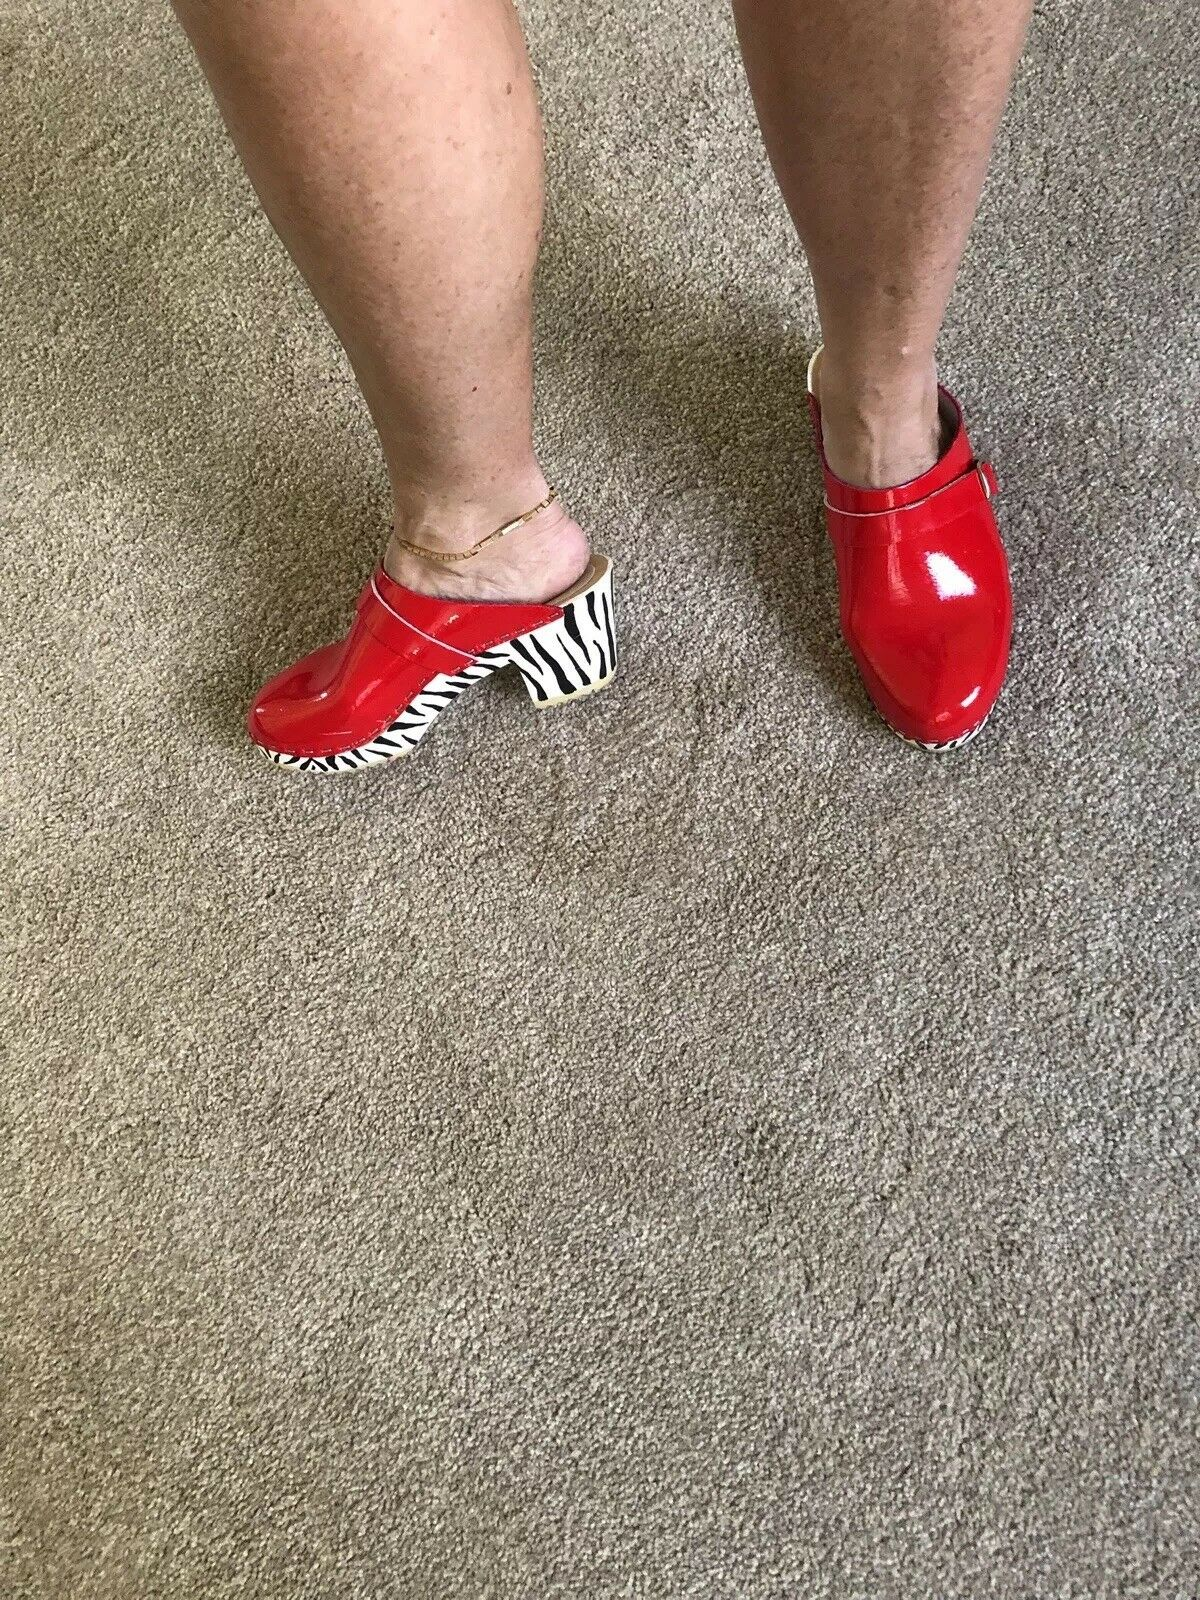 ONE OF A KIND Red Patent Patent Patent Leather Clogs w  HandPainted Zebra Heels   Size 38 8b56ac